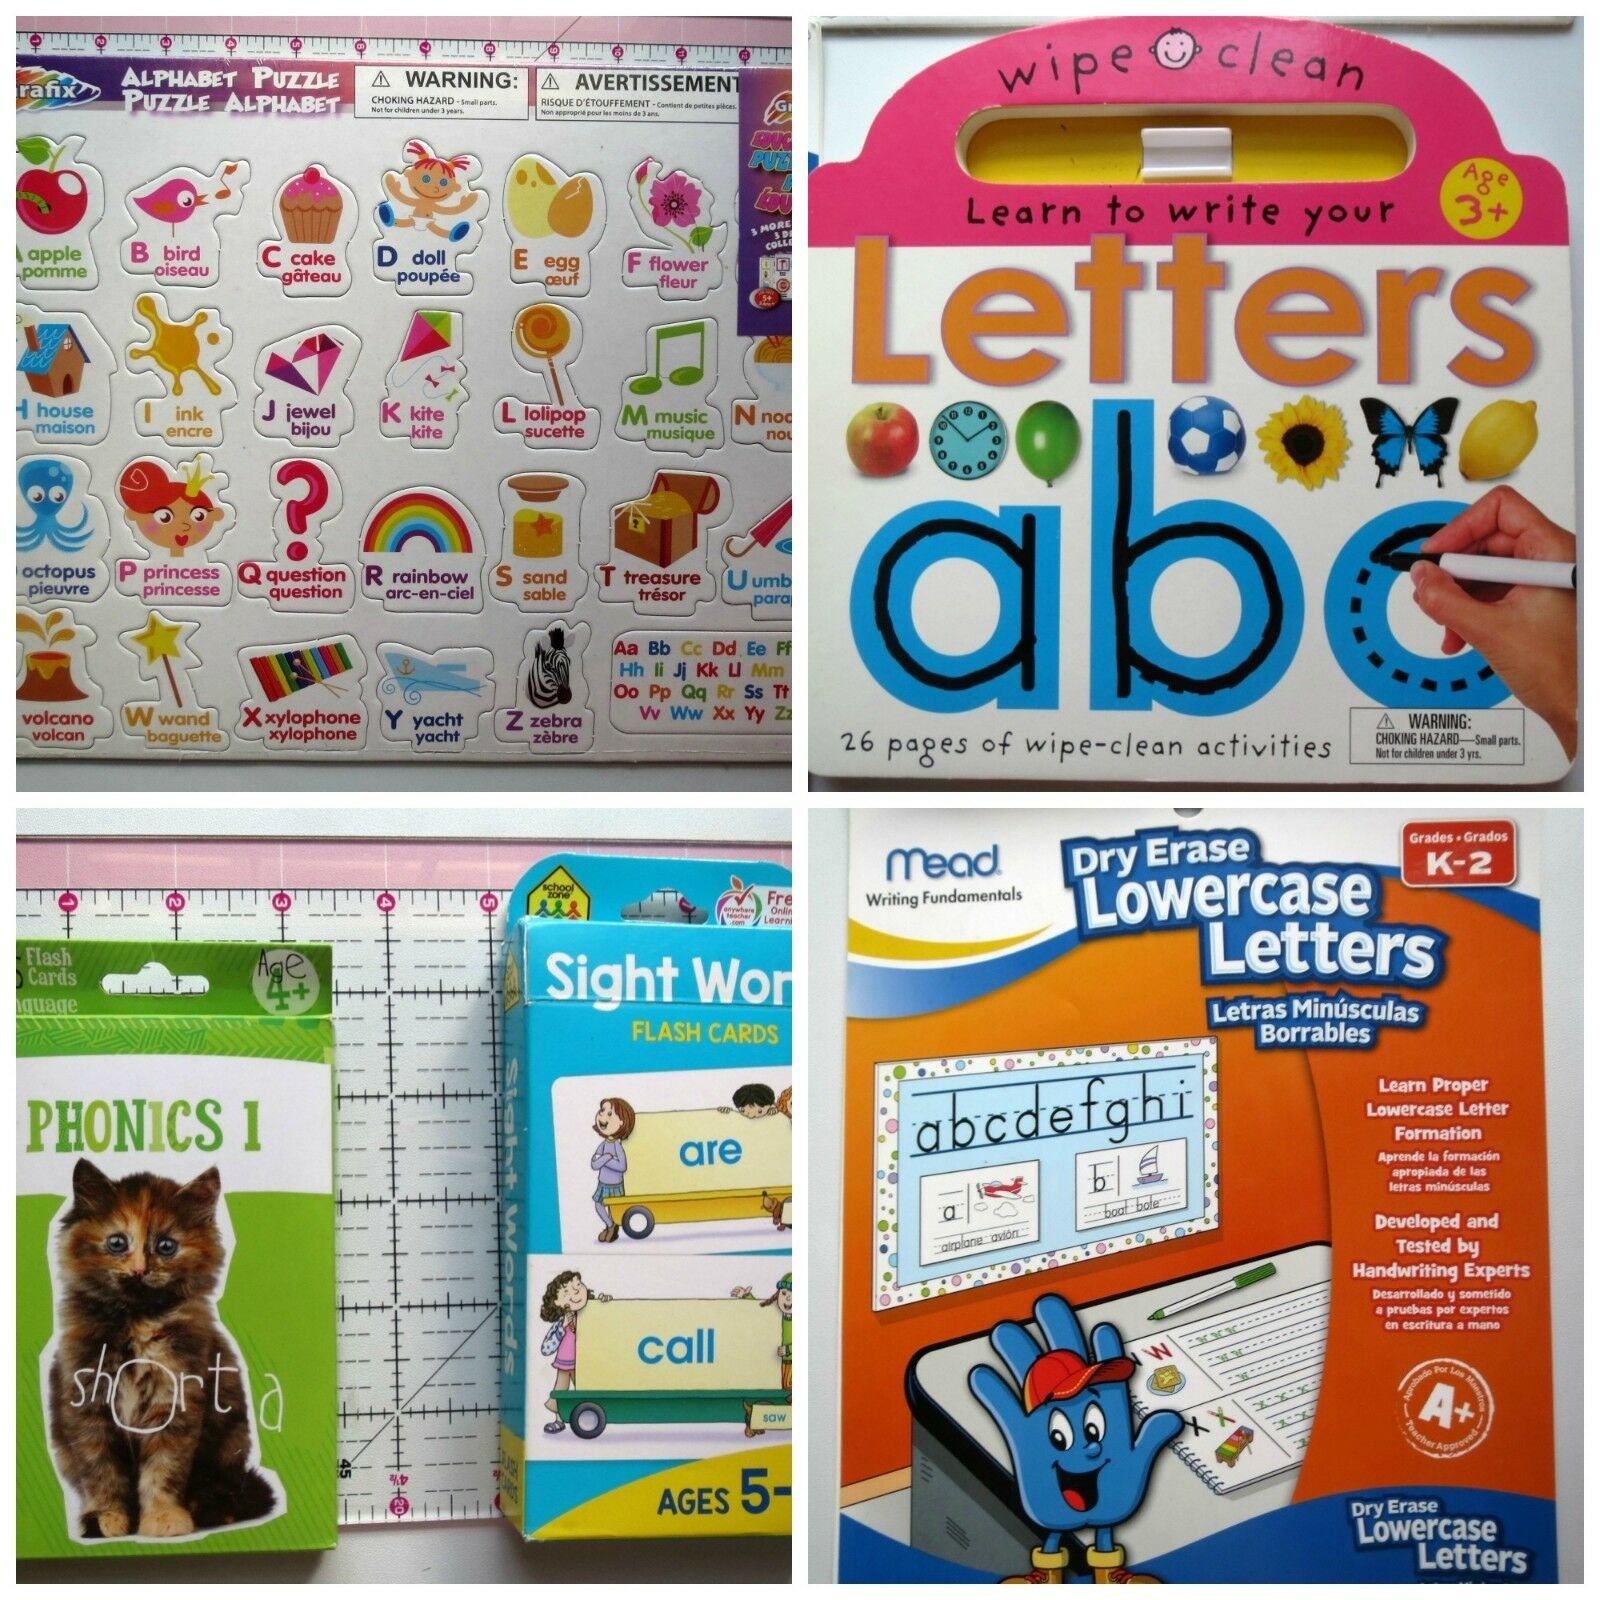 Lot Learn Letters Alphabet Puzzle, 2 Dry Erase Books, 2 Flash Cards Homeschool